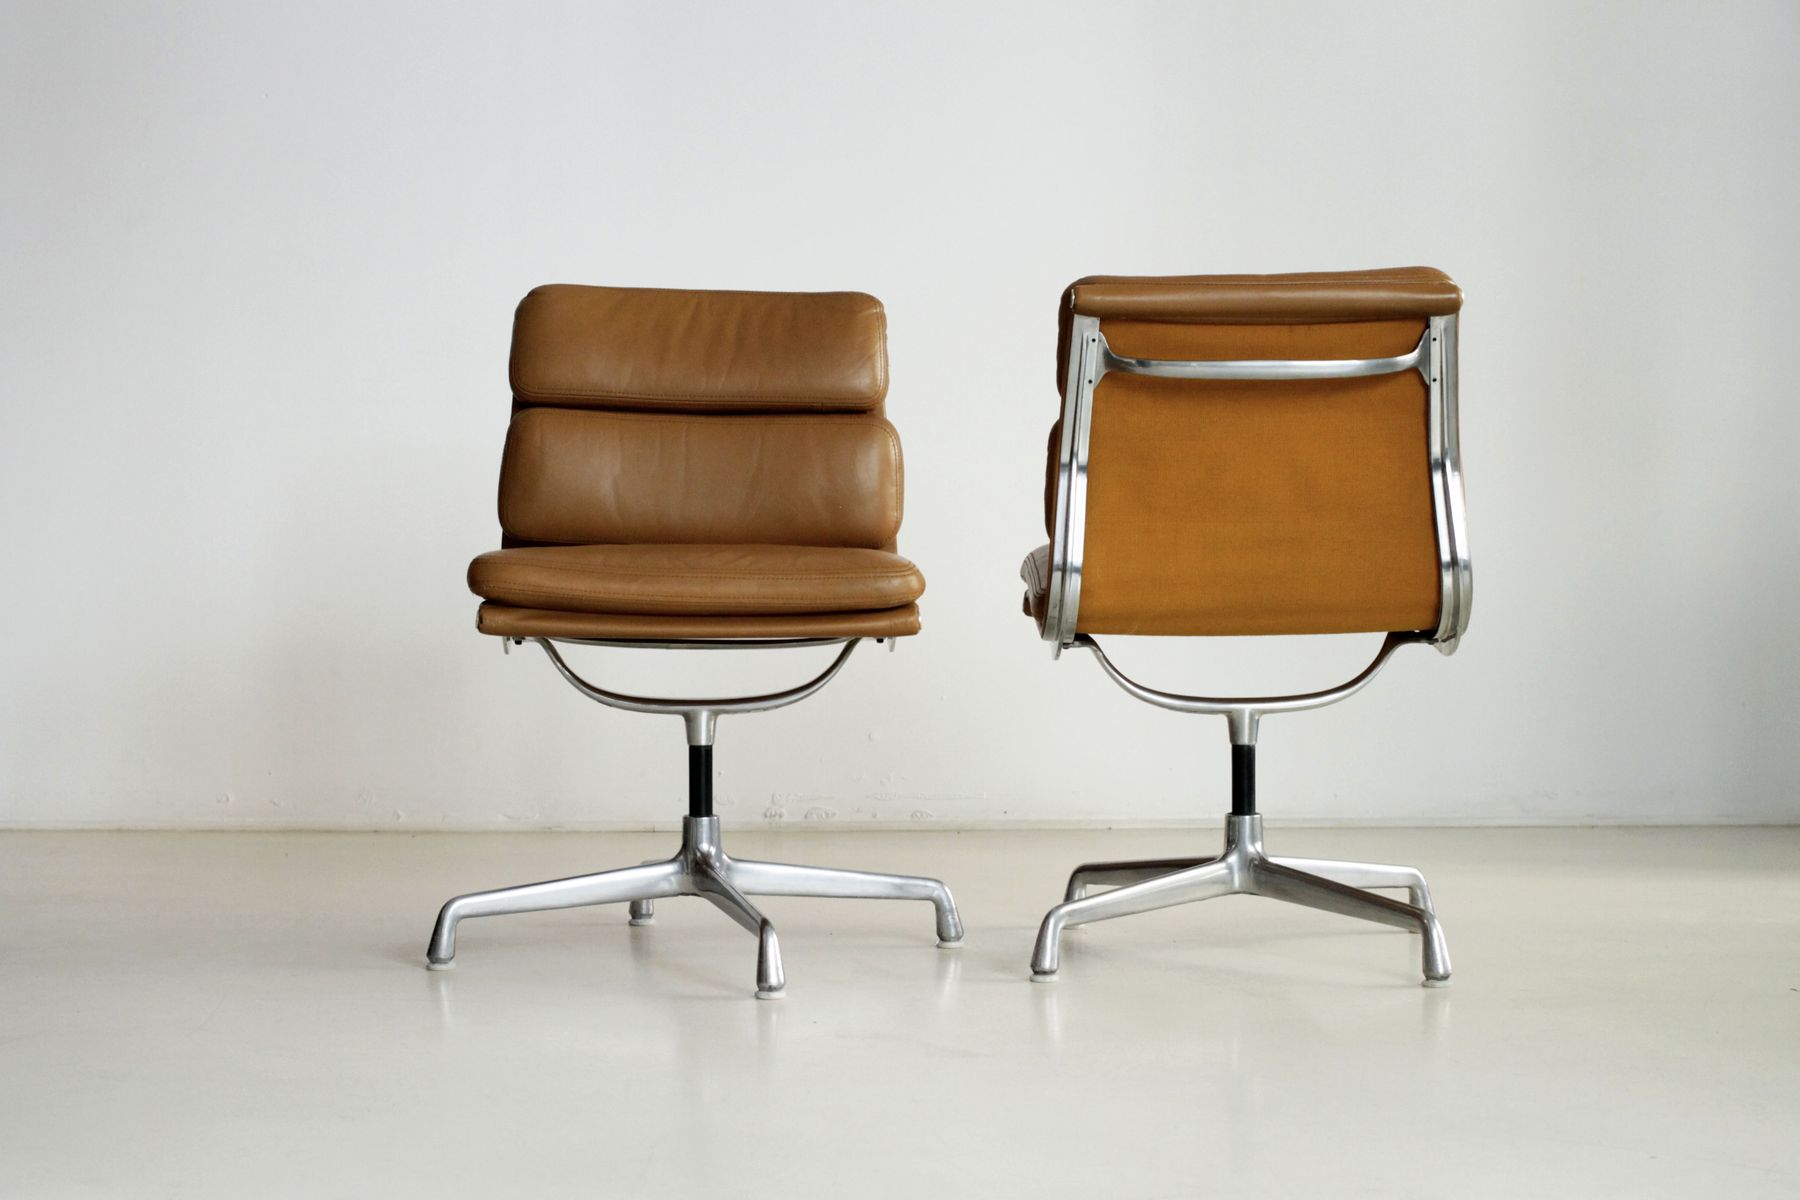 soft pad office chairs by charles eames for herman miller